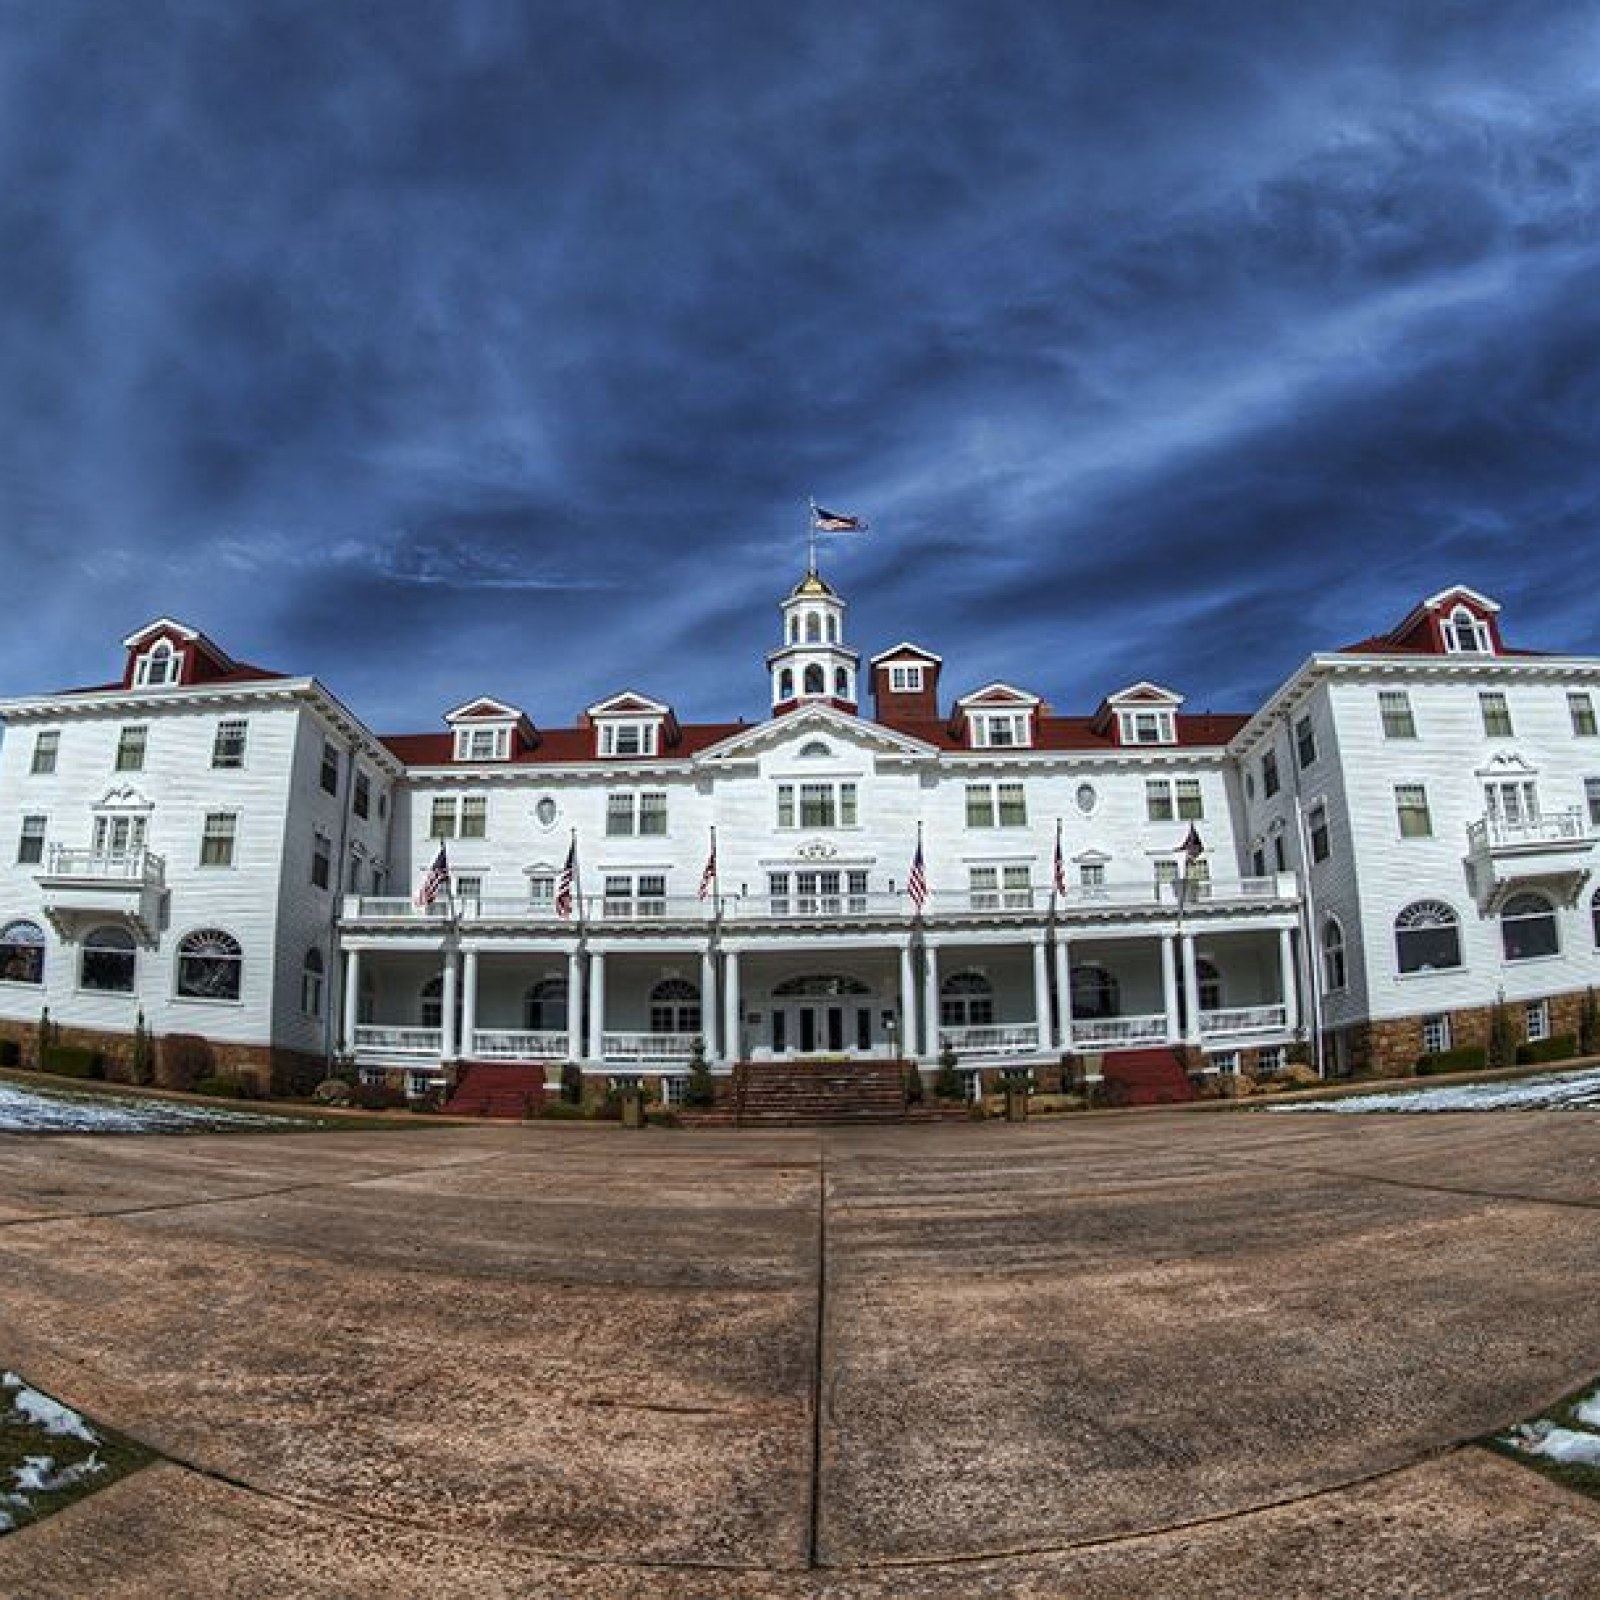 The Hotel From The Shining And Other Iconic Well Preserved Hollywood Film Settings